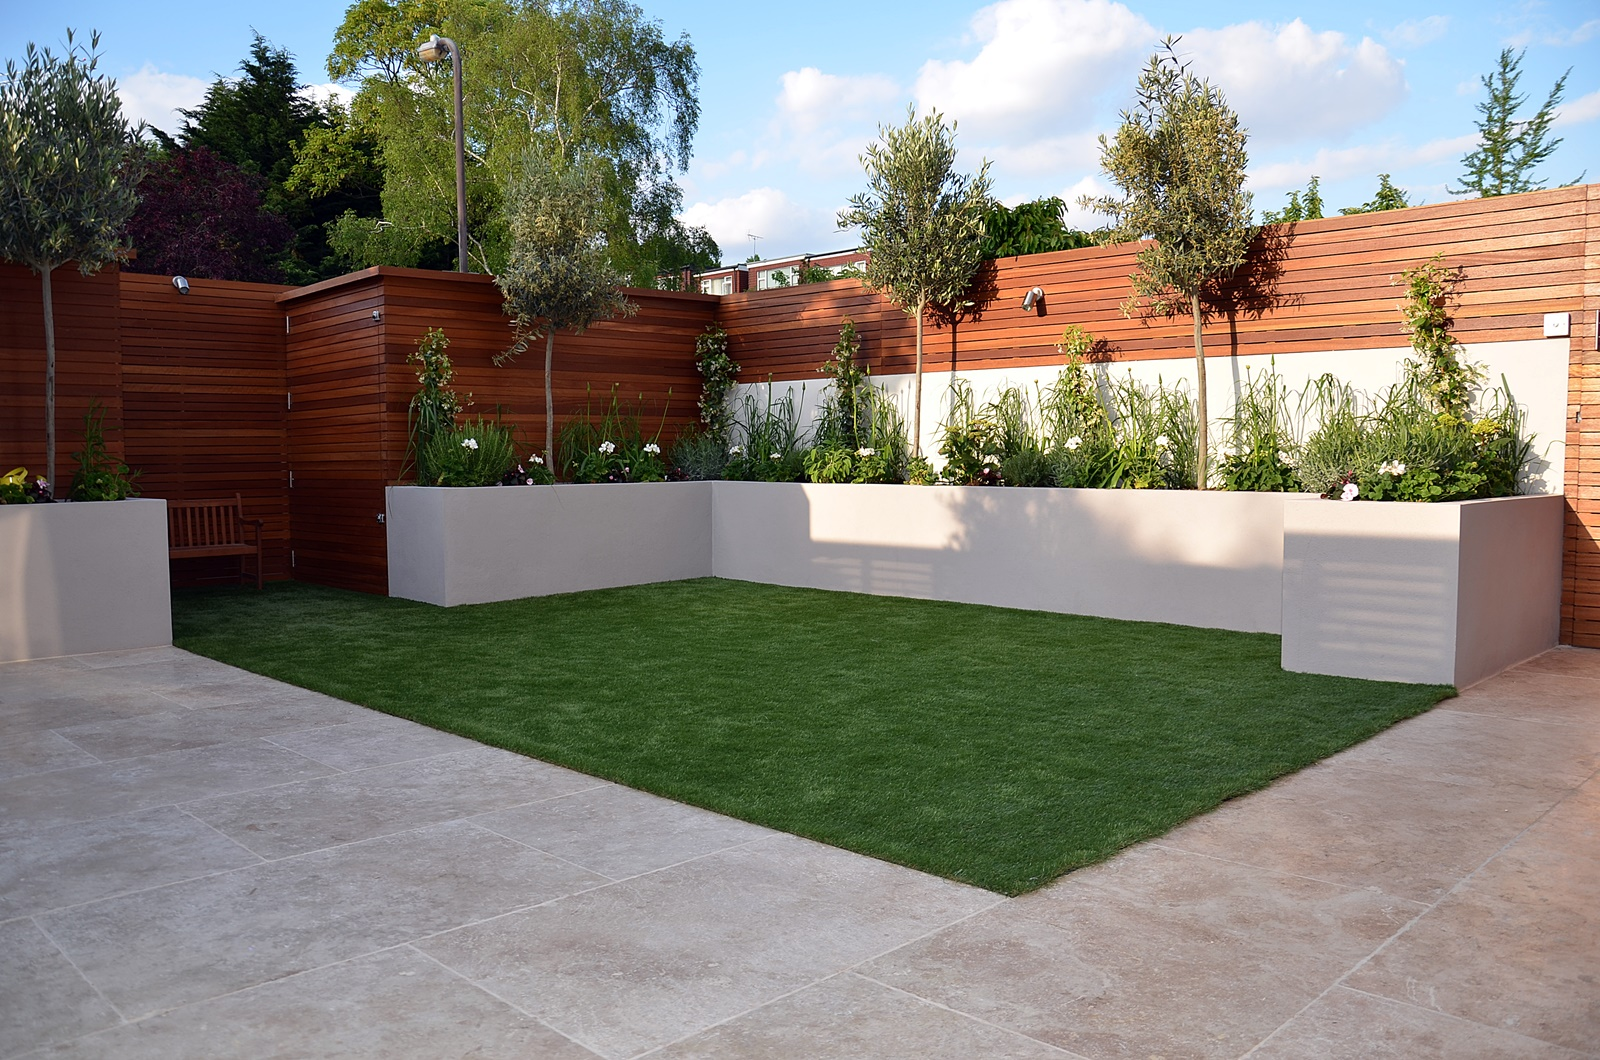 Modern garden design fulham chelsea clapham battersea for Small garden designs photos